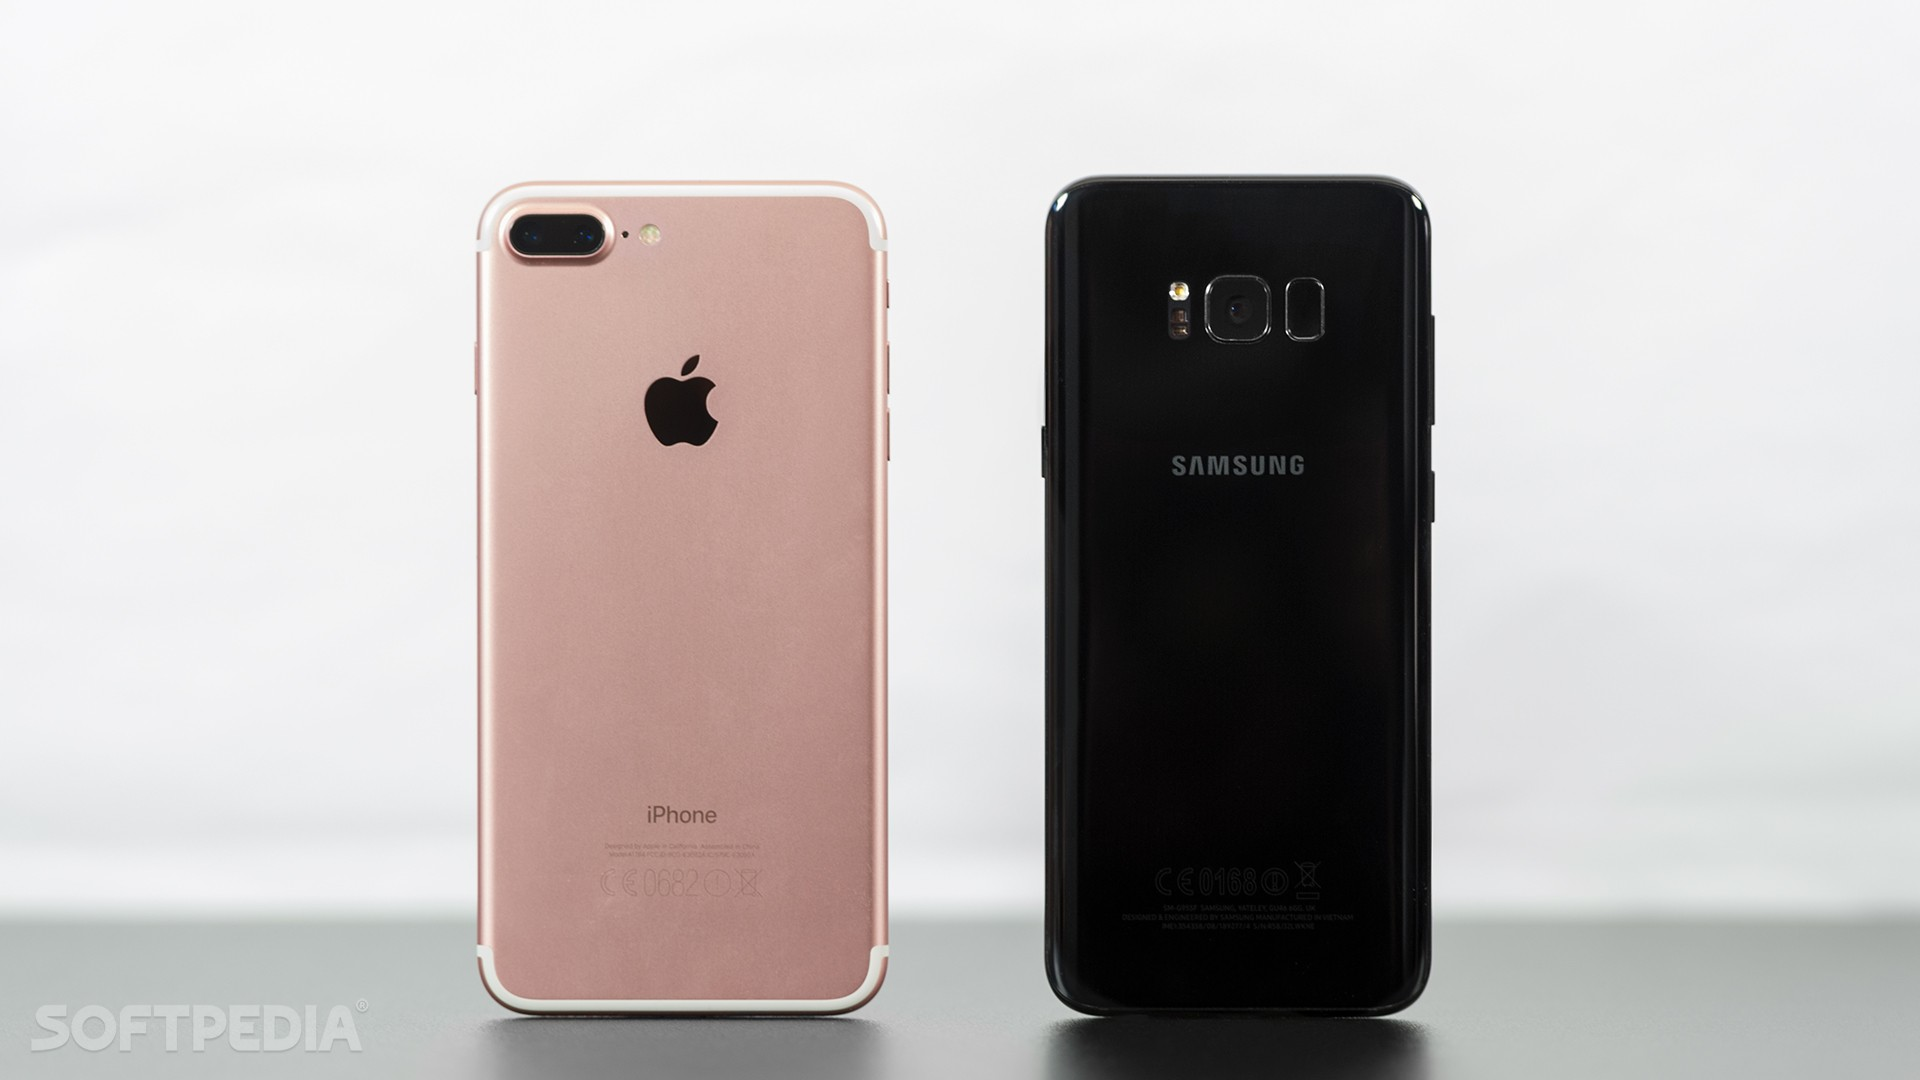 Samsung Galaxy S8 And Iphone 7 Plus